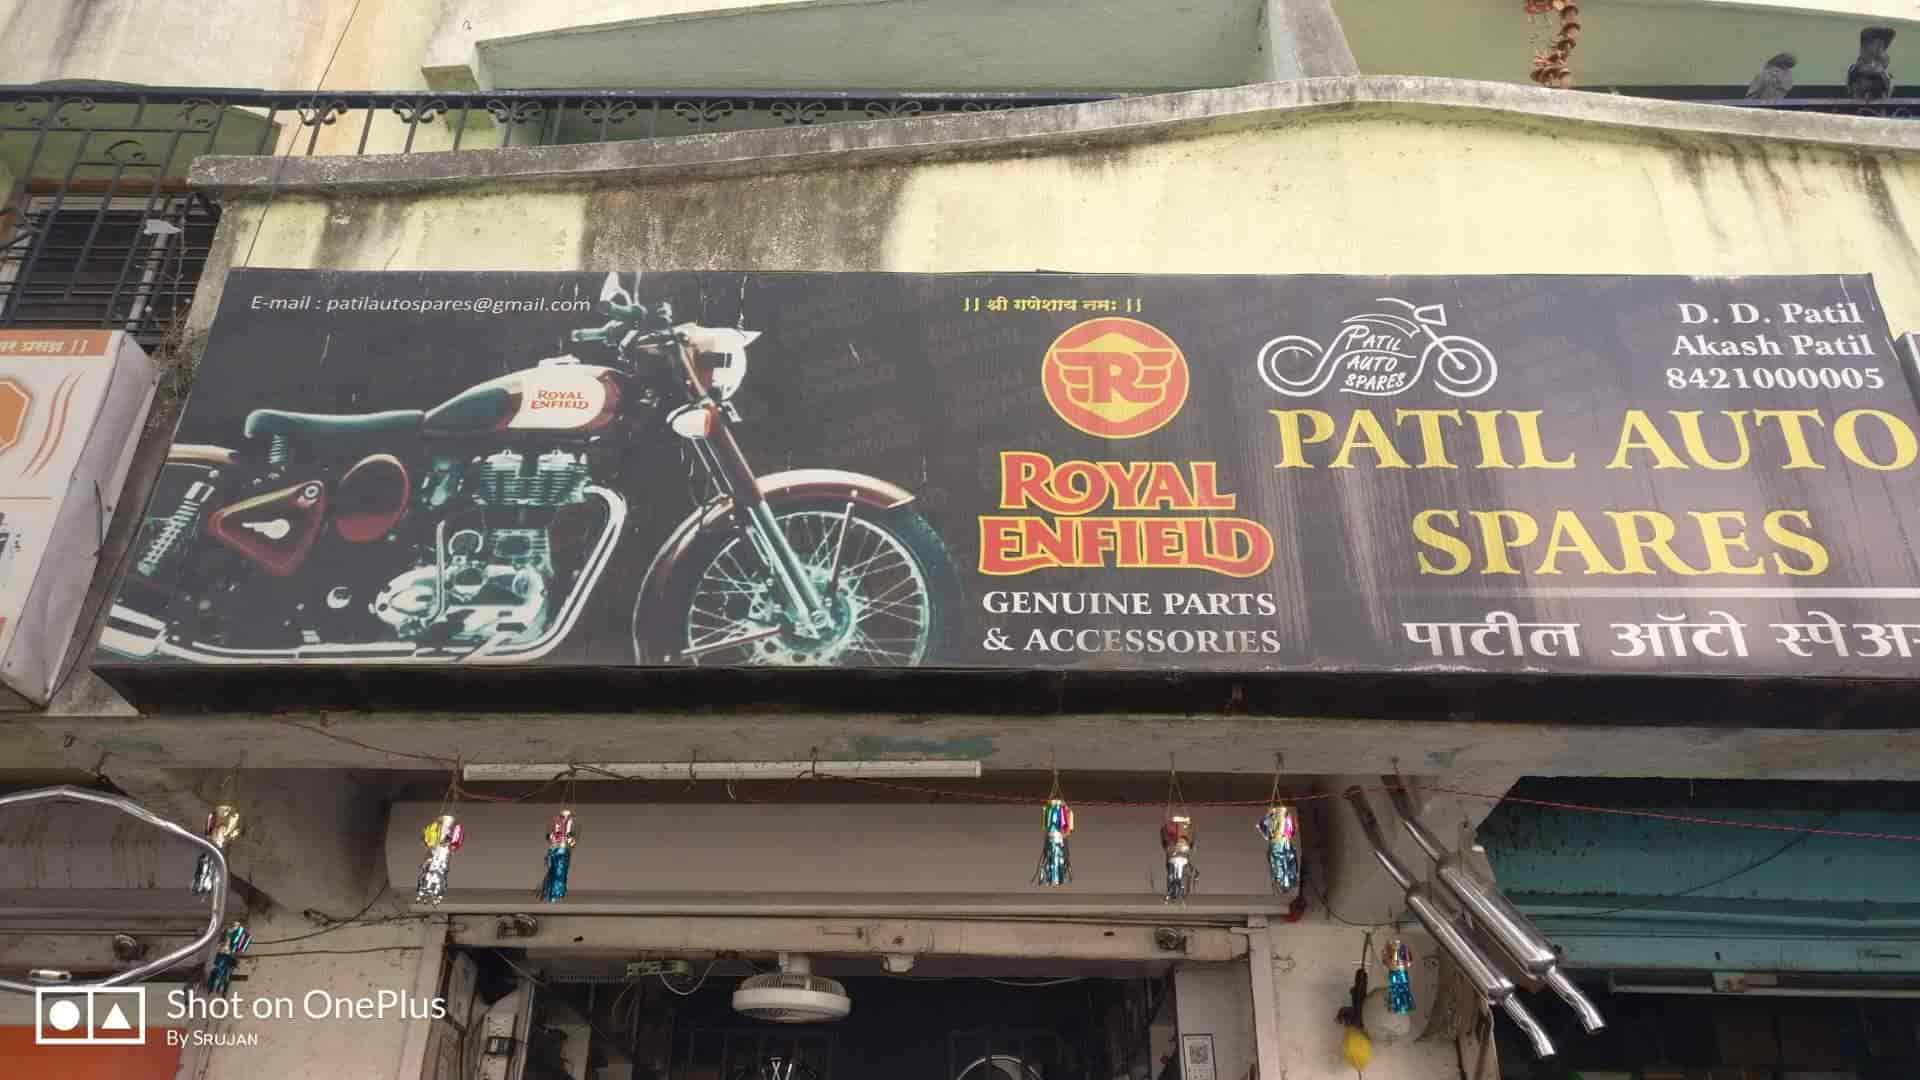 Patil Auto Spares, Hadapsar - Motorcycle Repair & Services-Royal